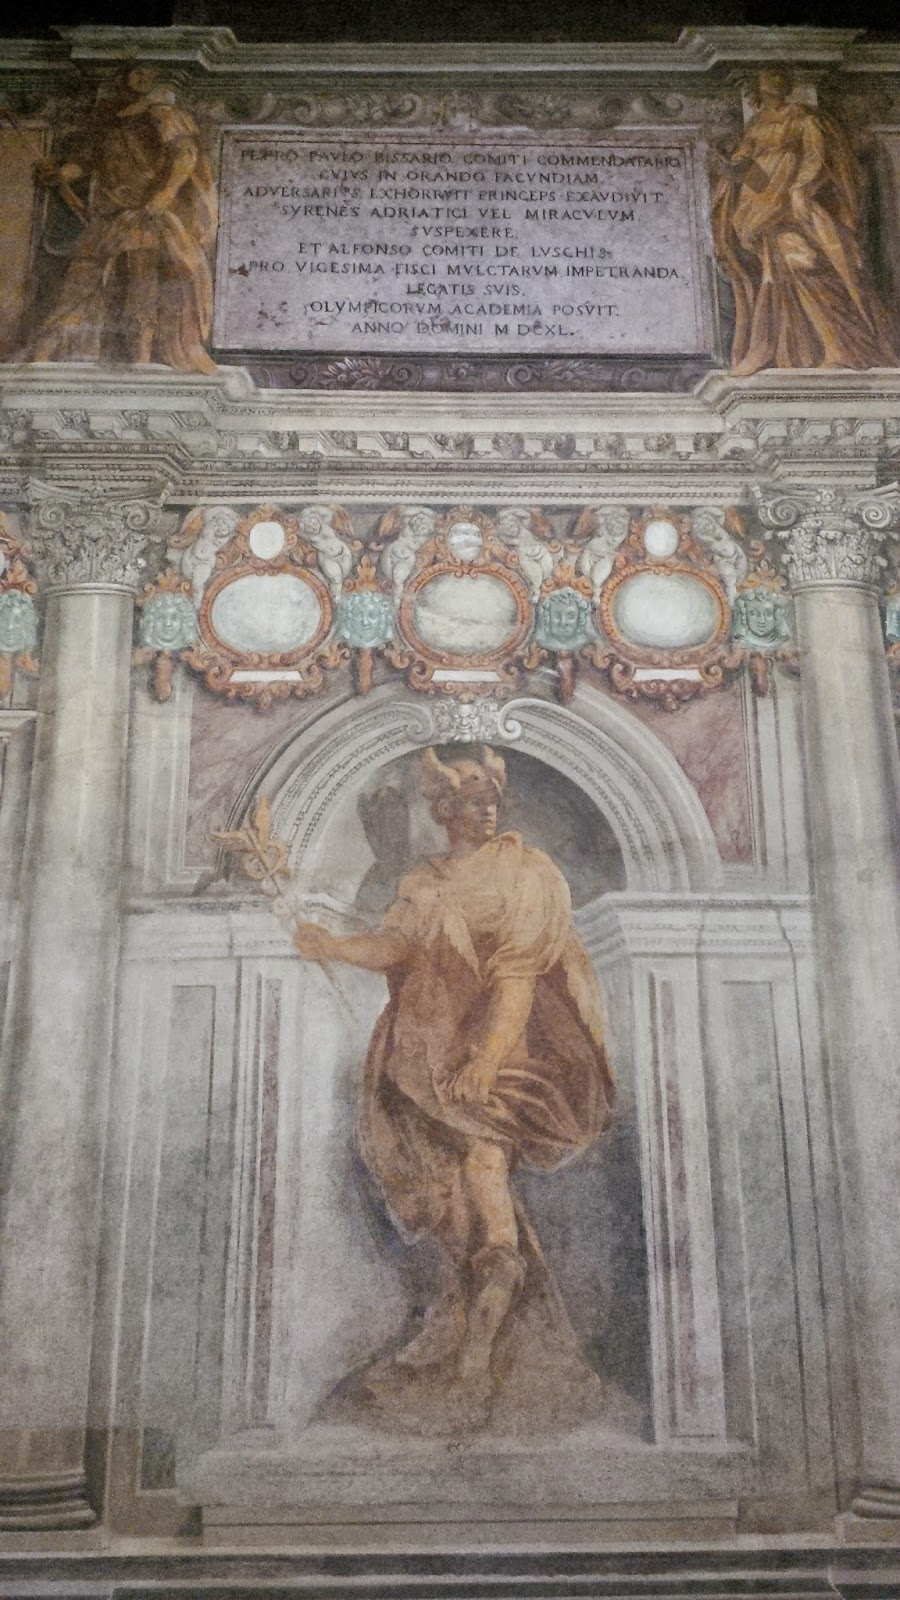 The antechamber of Teatro Olimpico in Vicenza